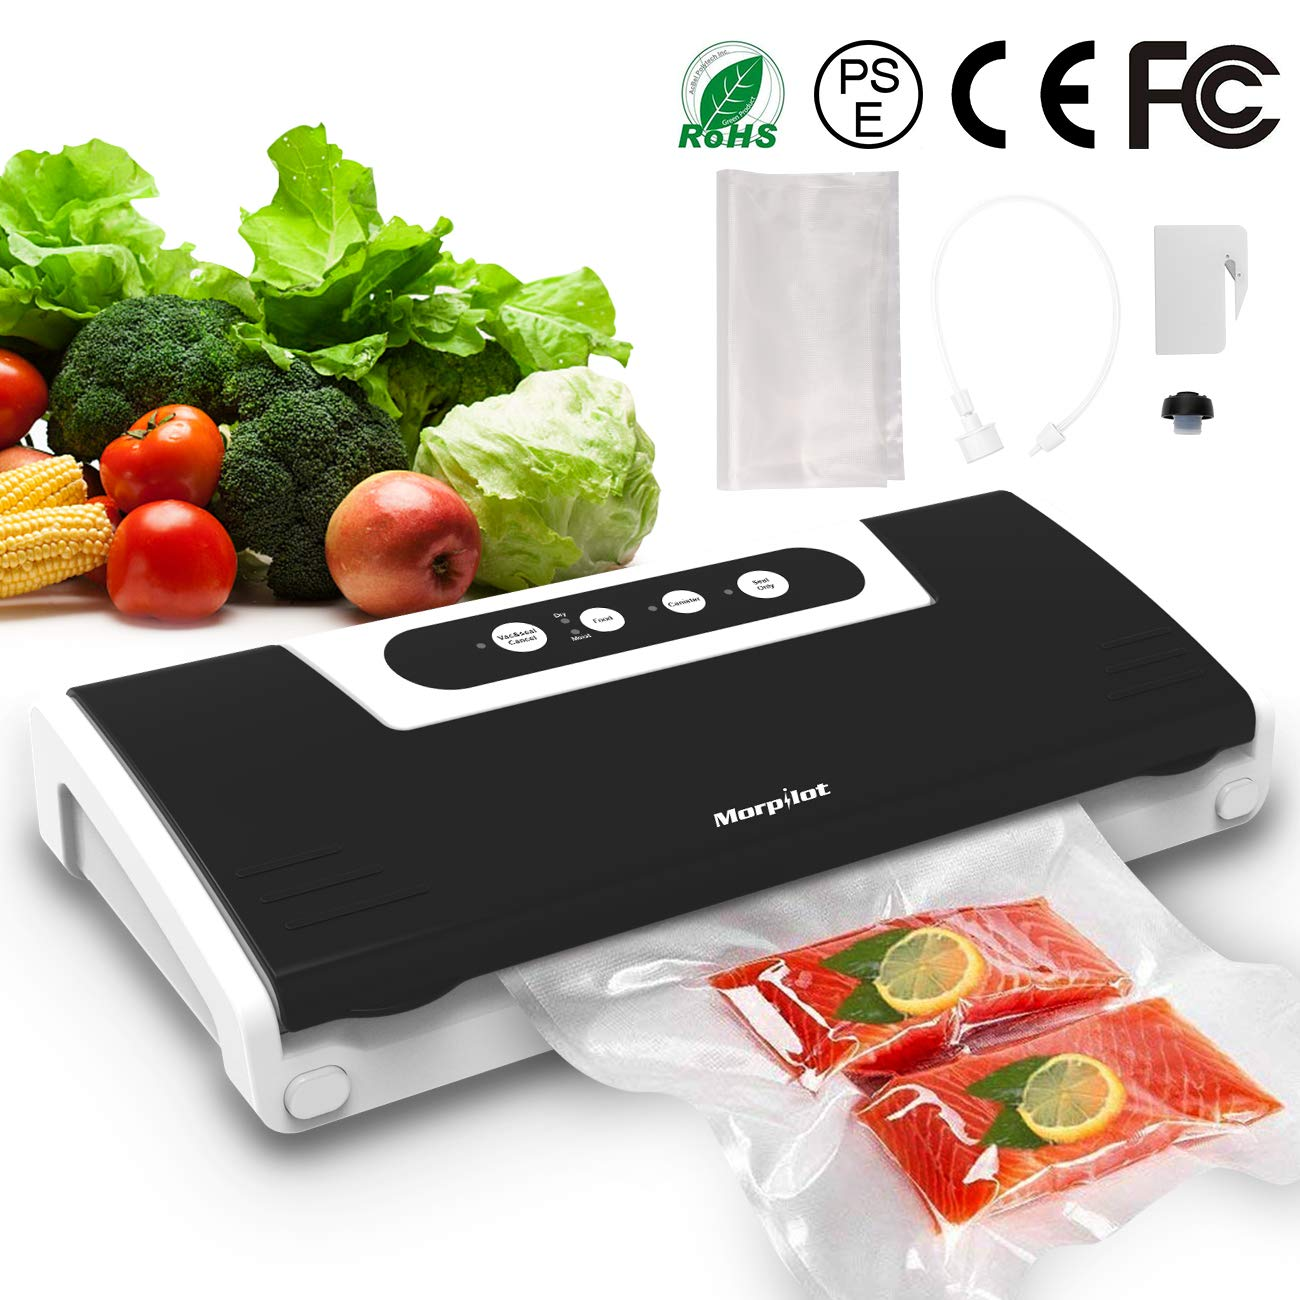 Vacuum Sealer,Automatic Vacuum Air Sealing System for Food Preservation and Air Suction Hose for Sous Vide ,Dry & Moist Food Modes,4 in 1 Food Sealer with Cutter,10 Vacuum Sealer Bags,Vacuum Bottle Stopper ,Safety Certified.